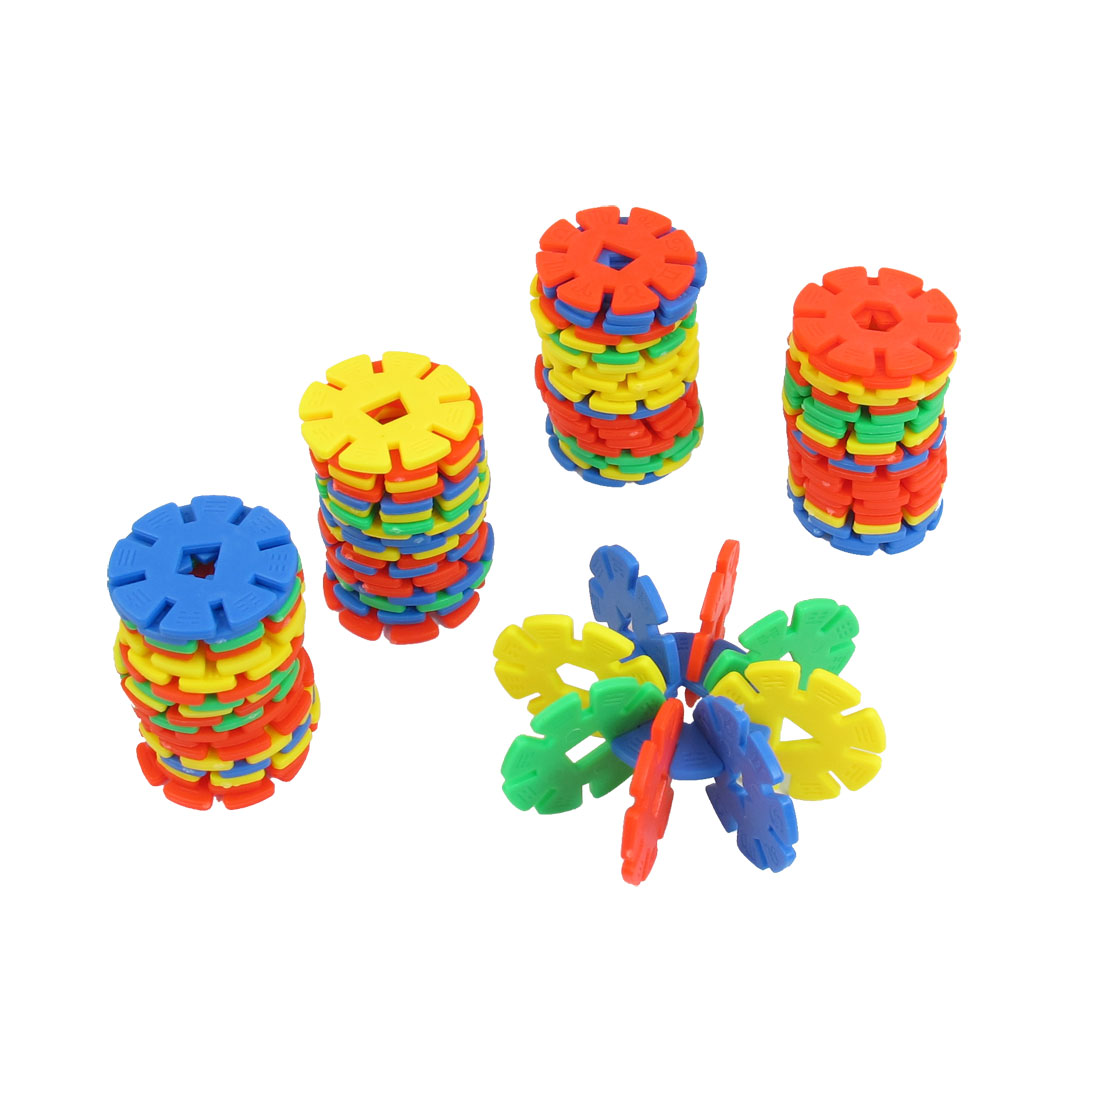 Colorful Plastic Snowflake Shape DIY Toy Building Blocks for Children